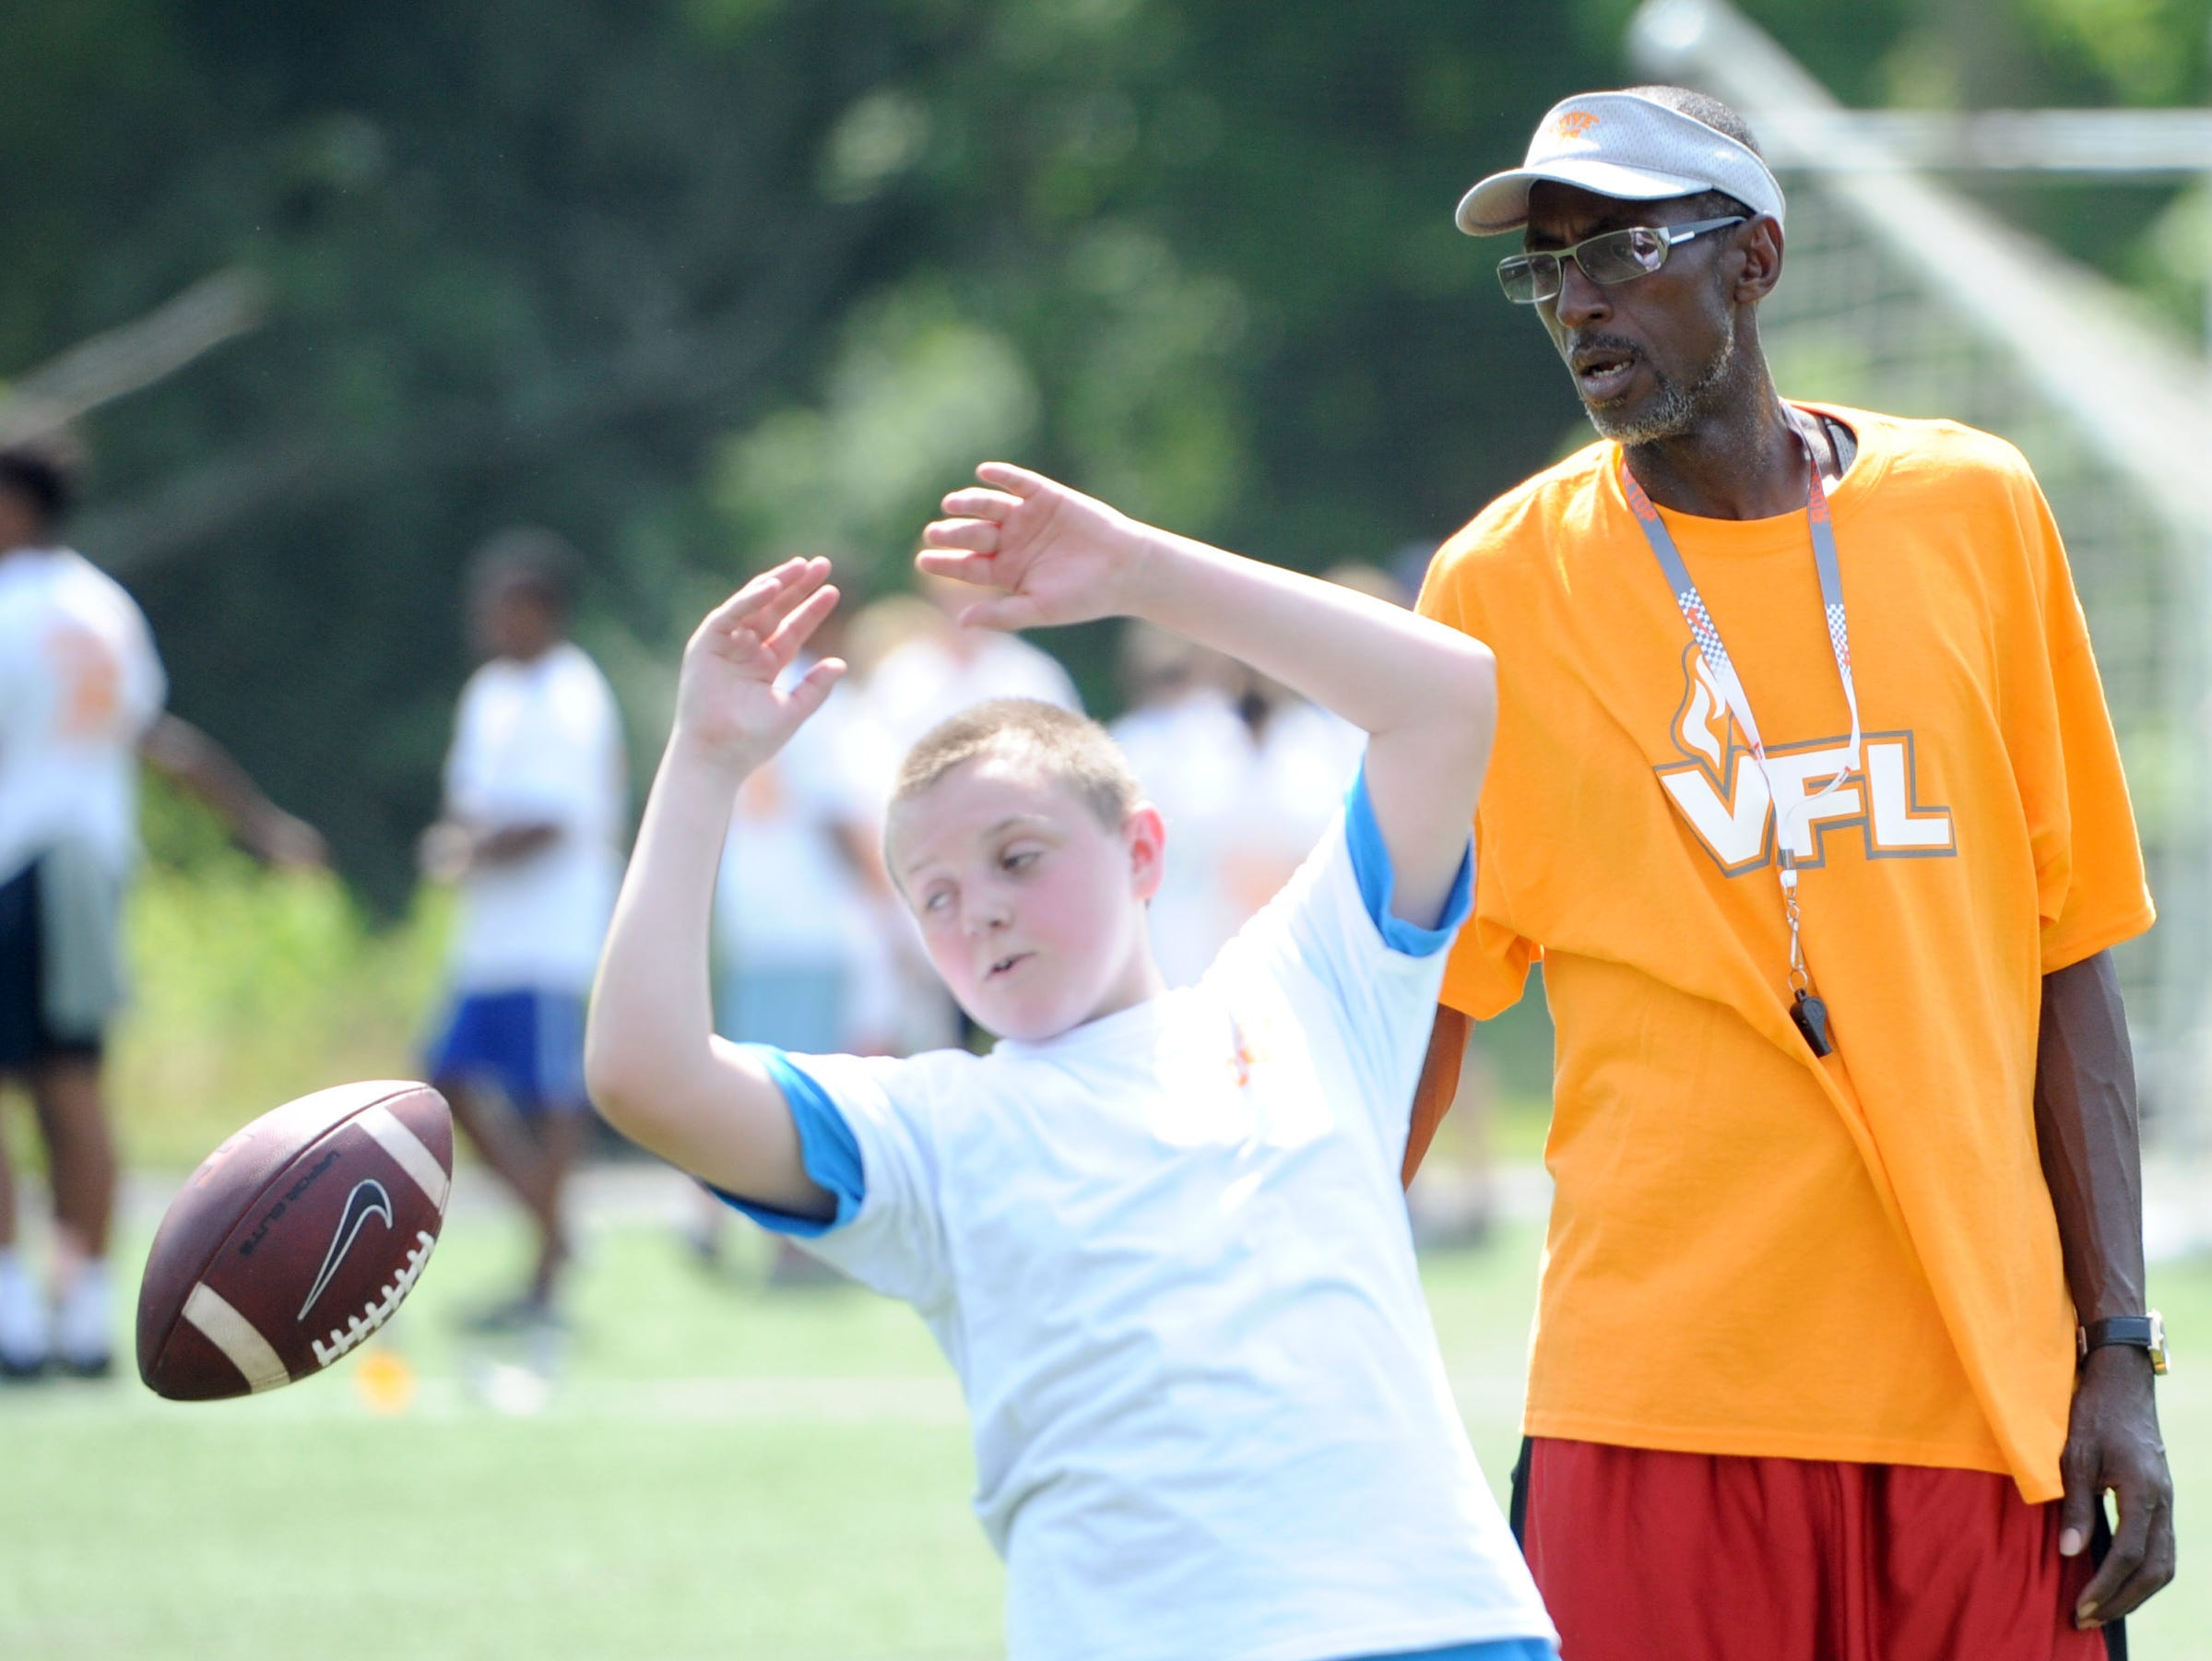 Former Tennessee quarterback Tony Robinson, right, watches as Mark Foust, 12, attempts a catch during the sixth annual Camp 76, featuring former University of Tennessee and NFL players at Johnny Long Training Academy on Saturday, June 4, 2016. Camp 76 is a continuing effort to keep the legacy of former UT football player Harry Galbreath, who died in 2010 at age 45, alive for young athletes and generations to come.